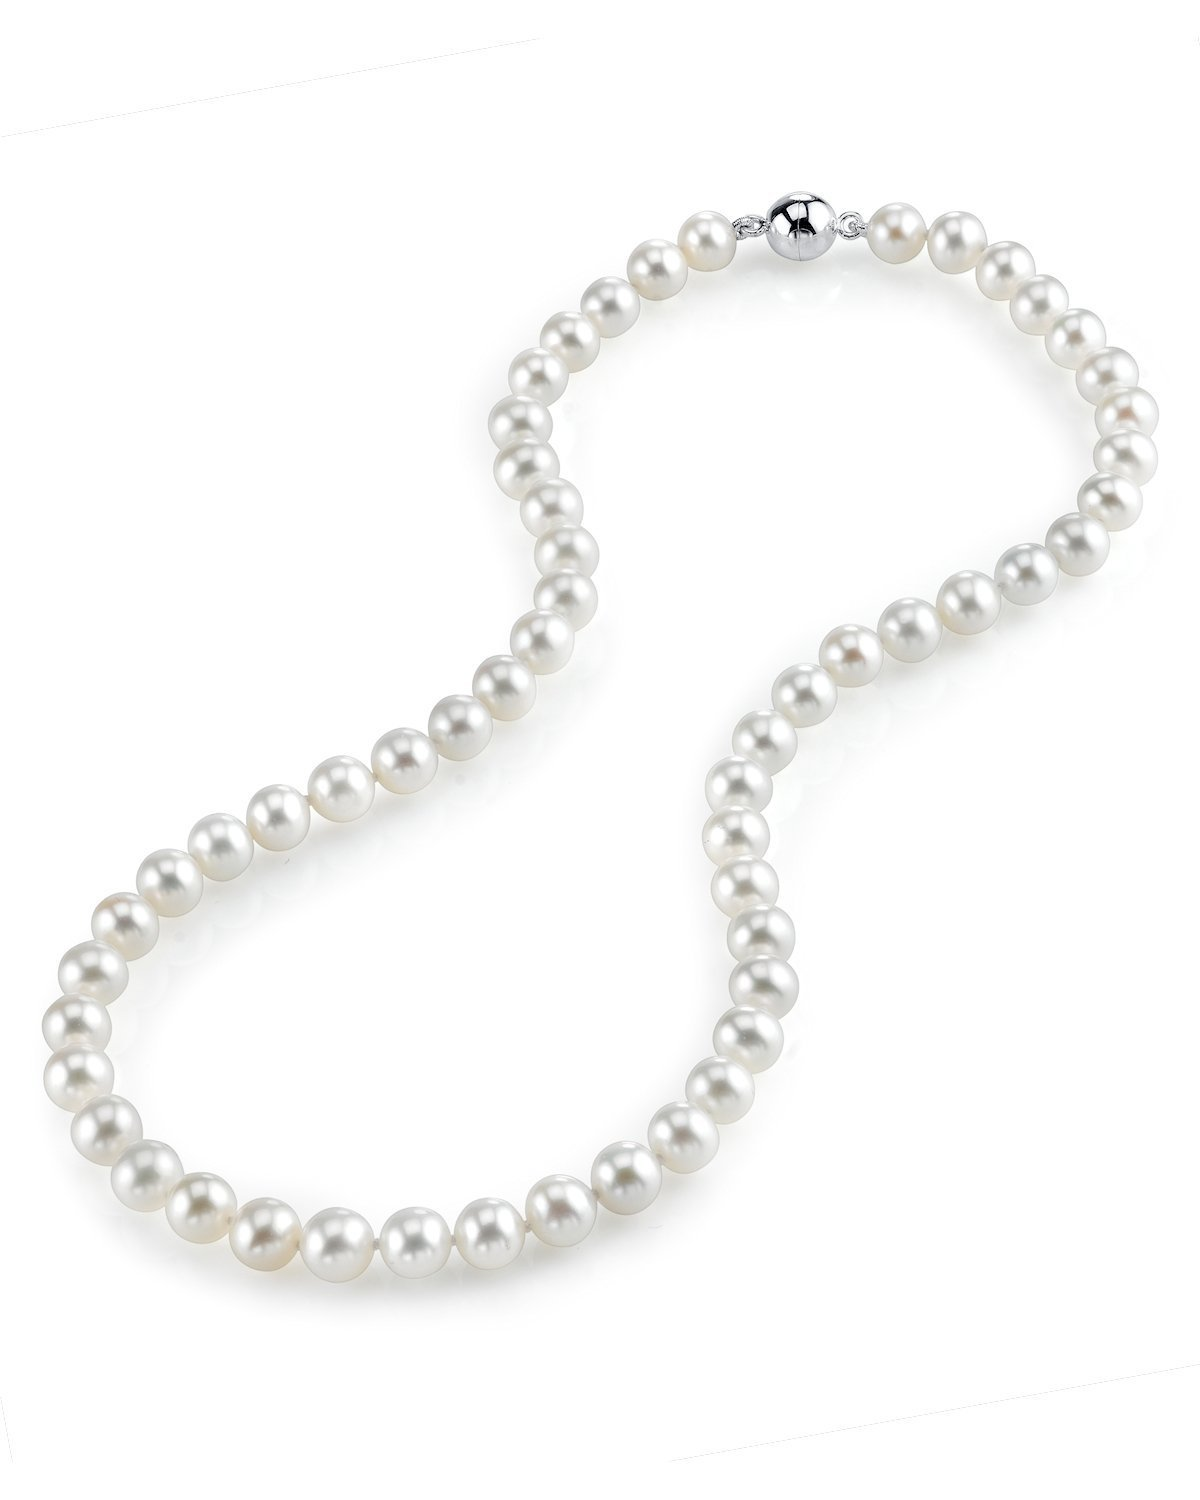 THE PEARL SOURCE 7-8mm AAA Quality Round White Freshwater Cultured Pearl Necklace for Women with Magnetic Clasp in 20'' Matinee Length